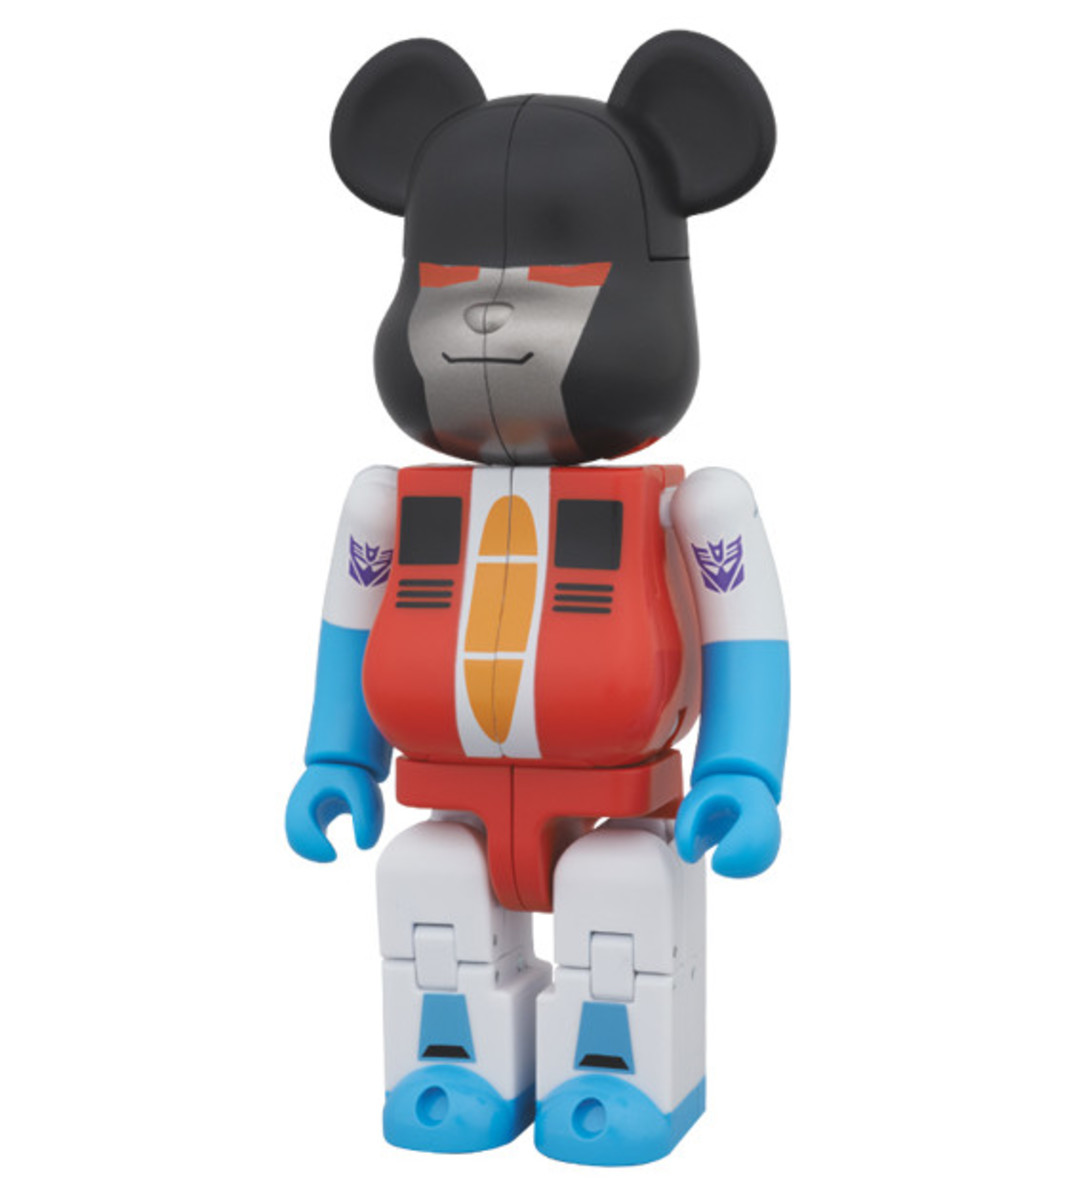 transformers-medicom-toy-transformable-bearbrick-200-percent-set-08